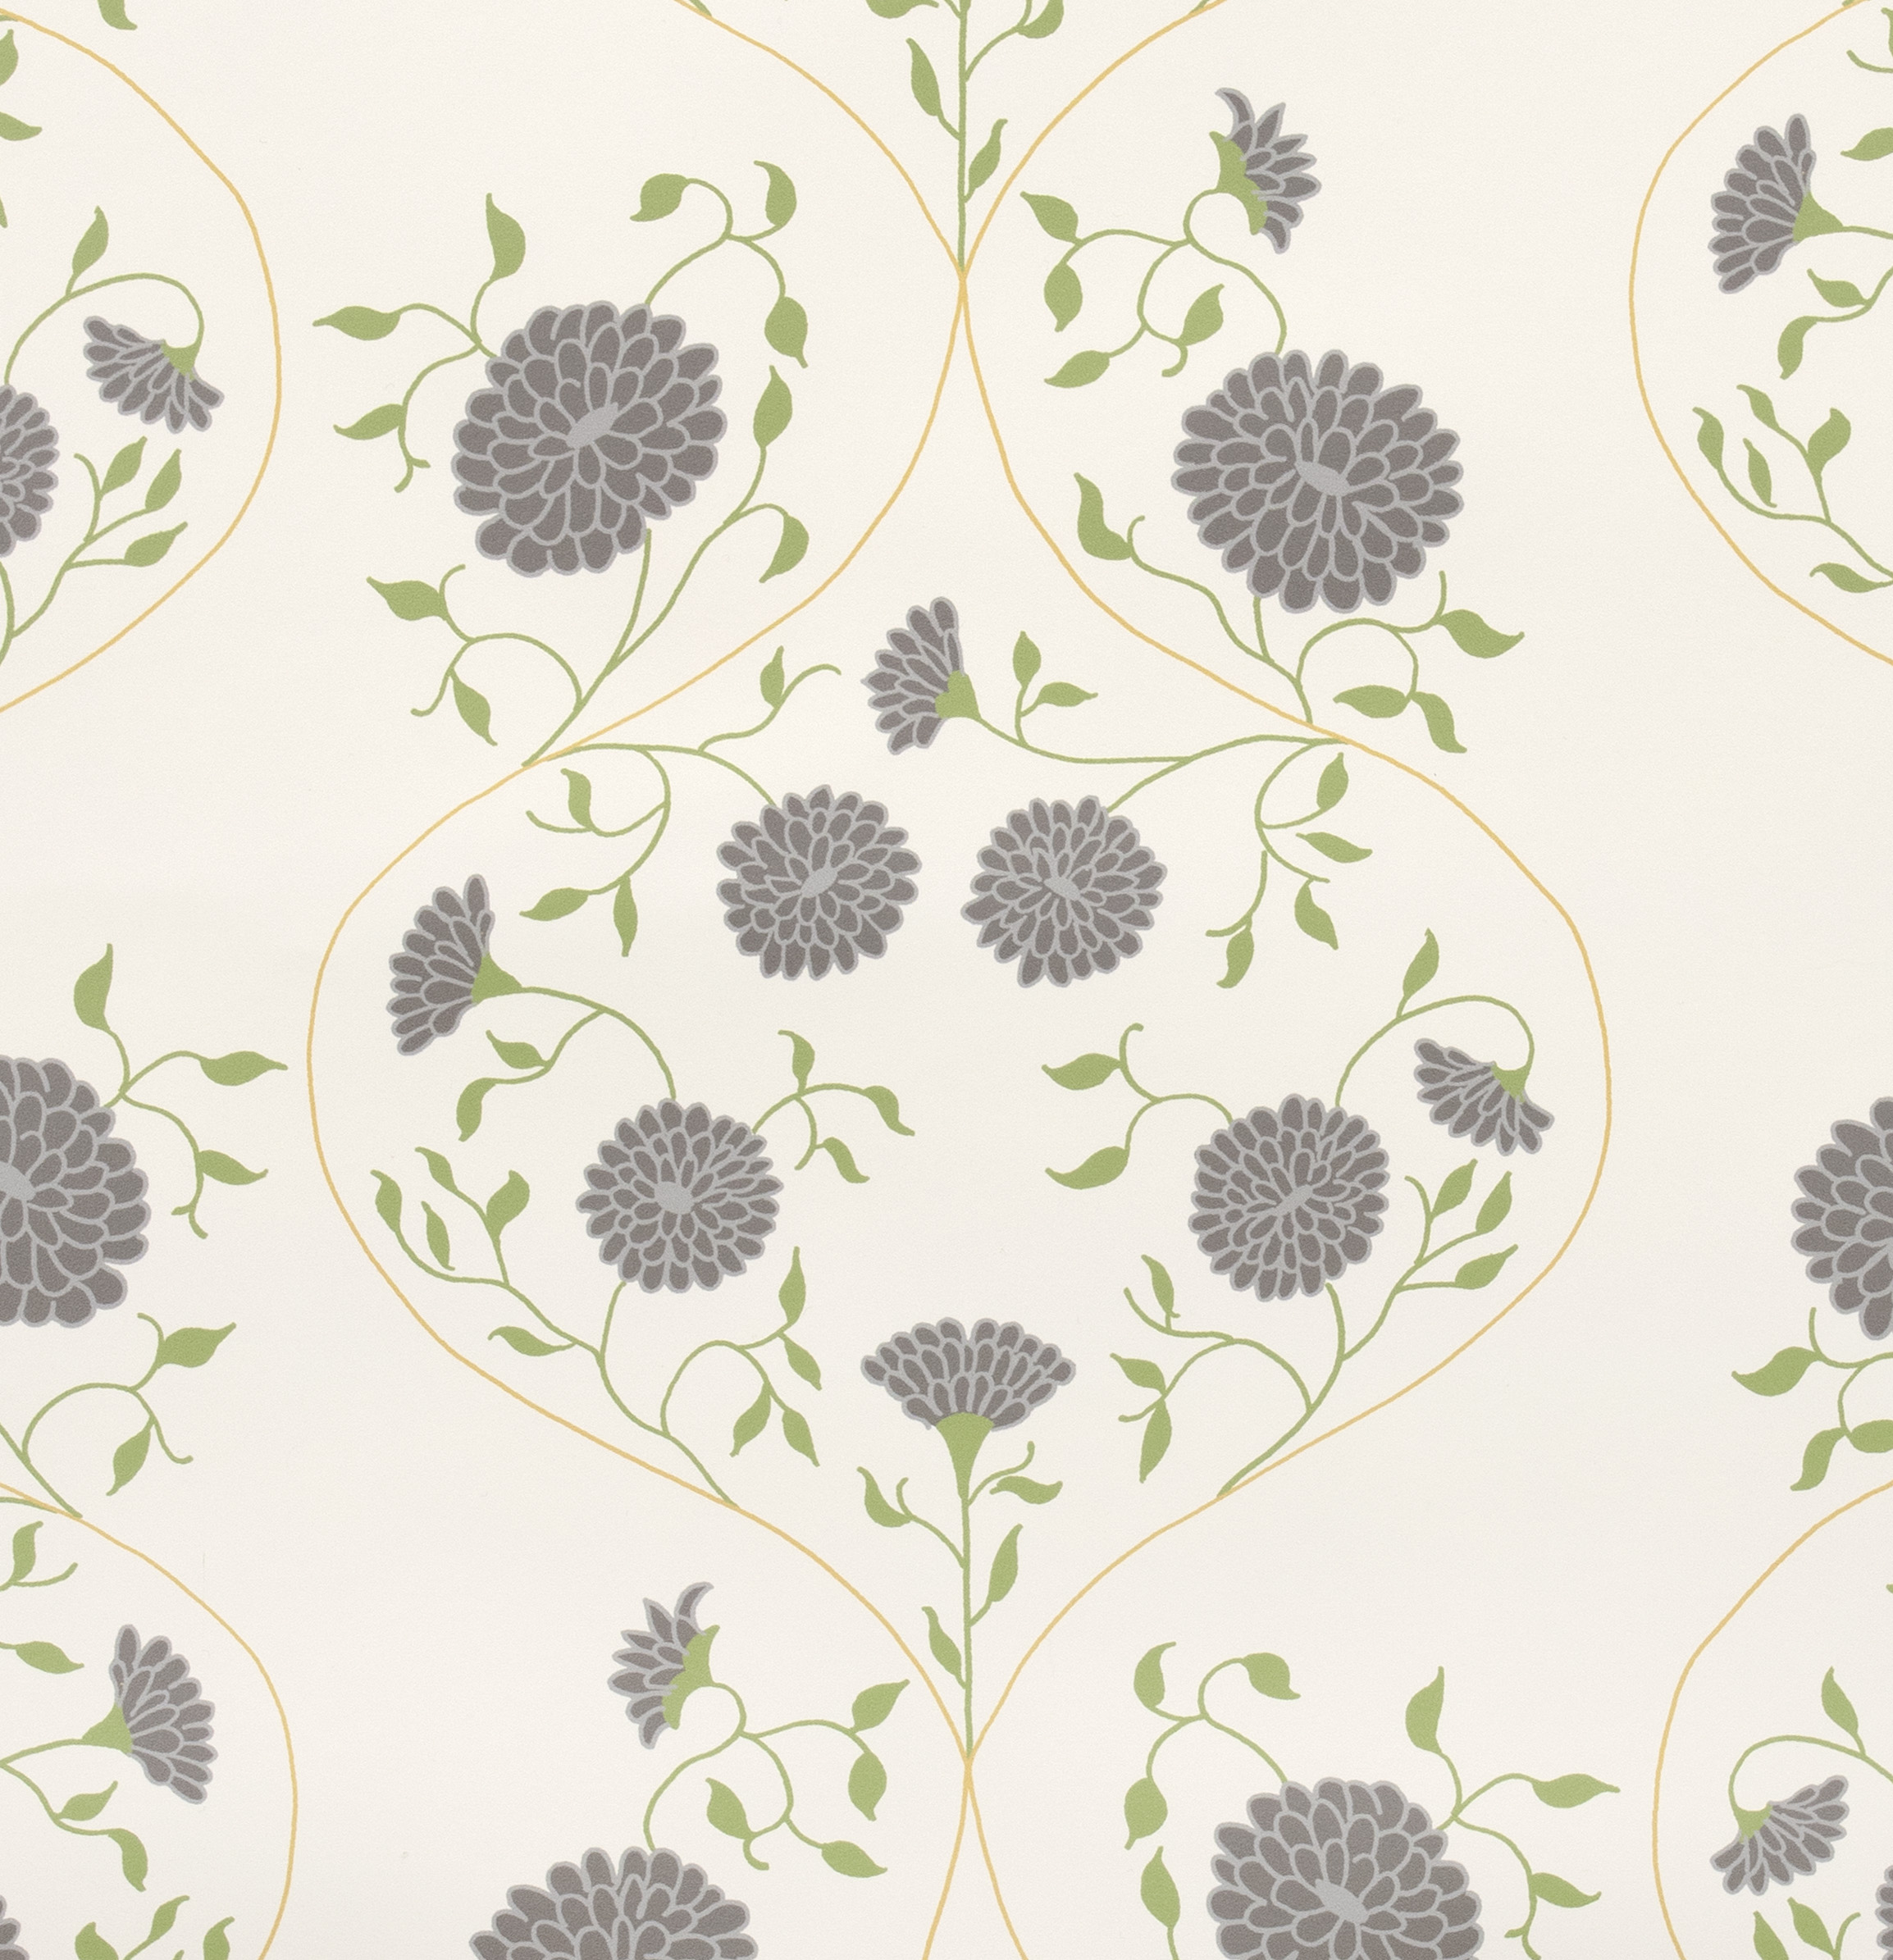 Jaipur Solid Wallpaper detail - Stone/Charcoal